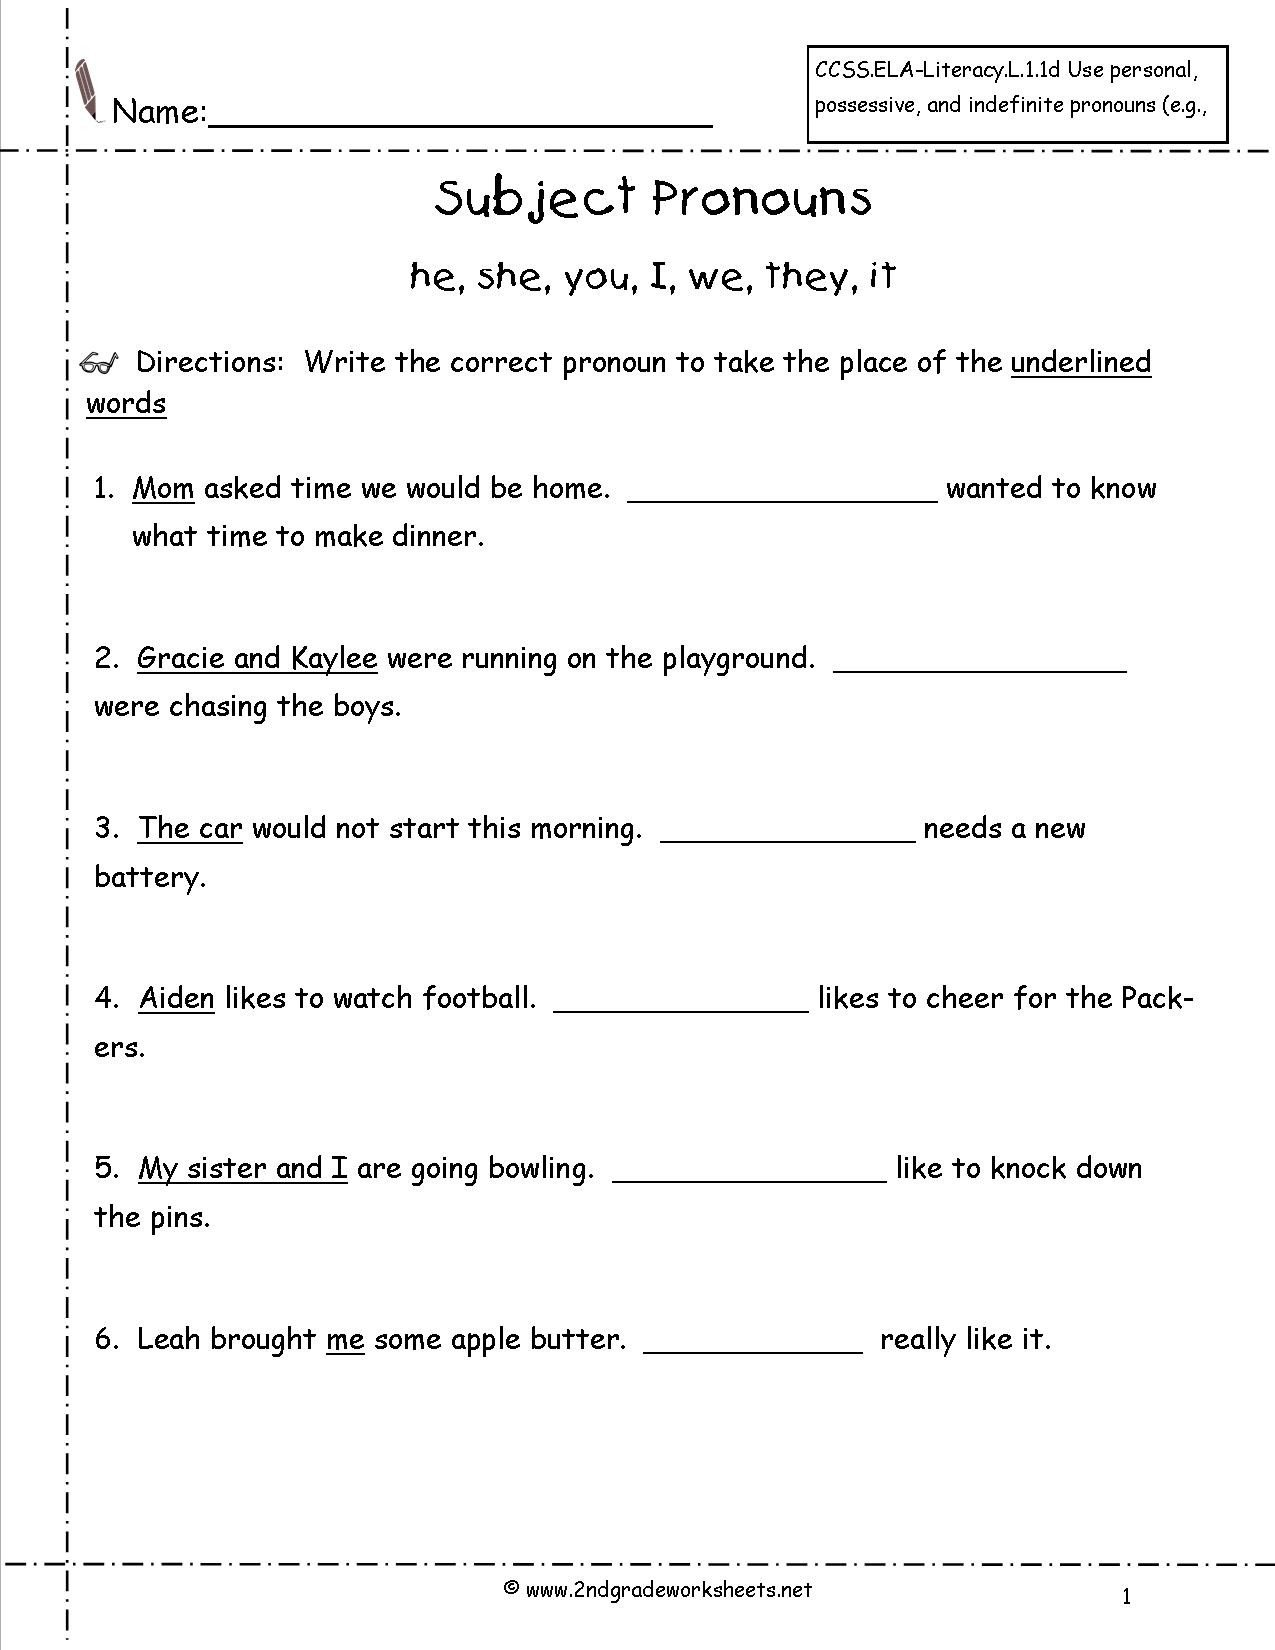 Free Pronoun Worksheets Subject Pronouns Worksheets Kindergarten